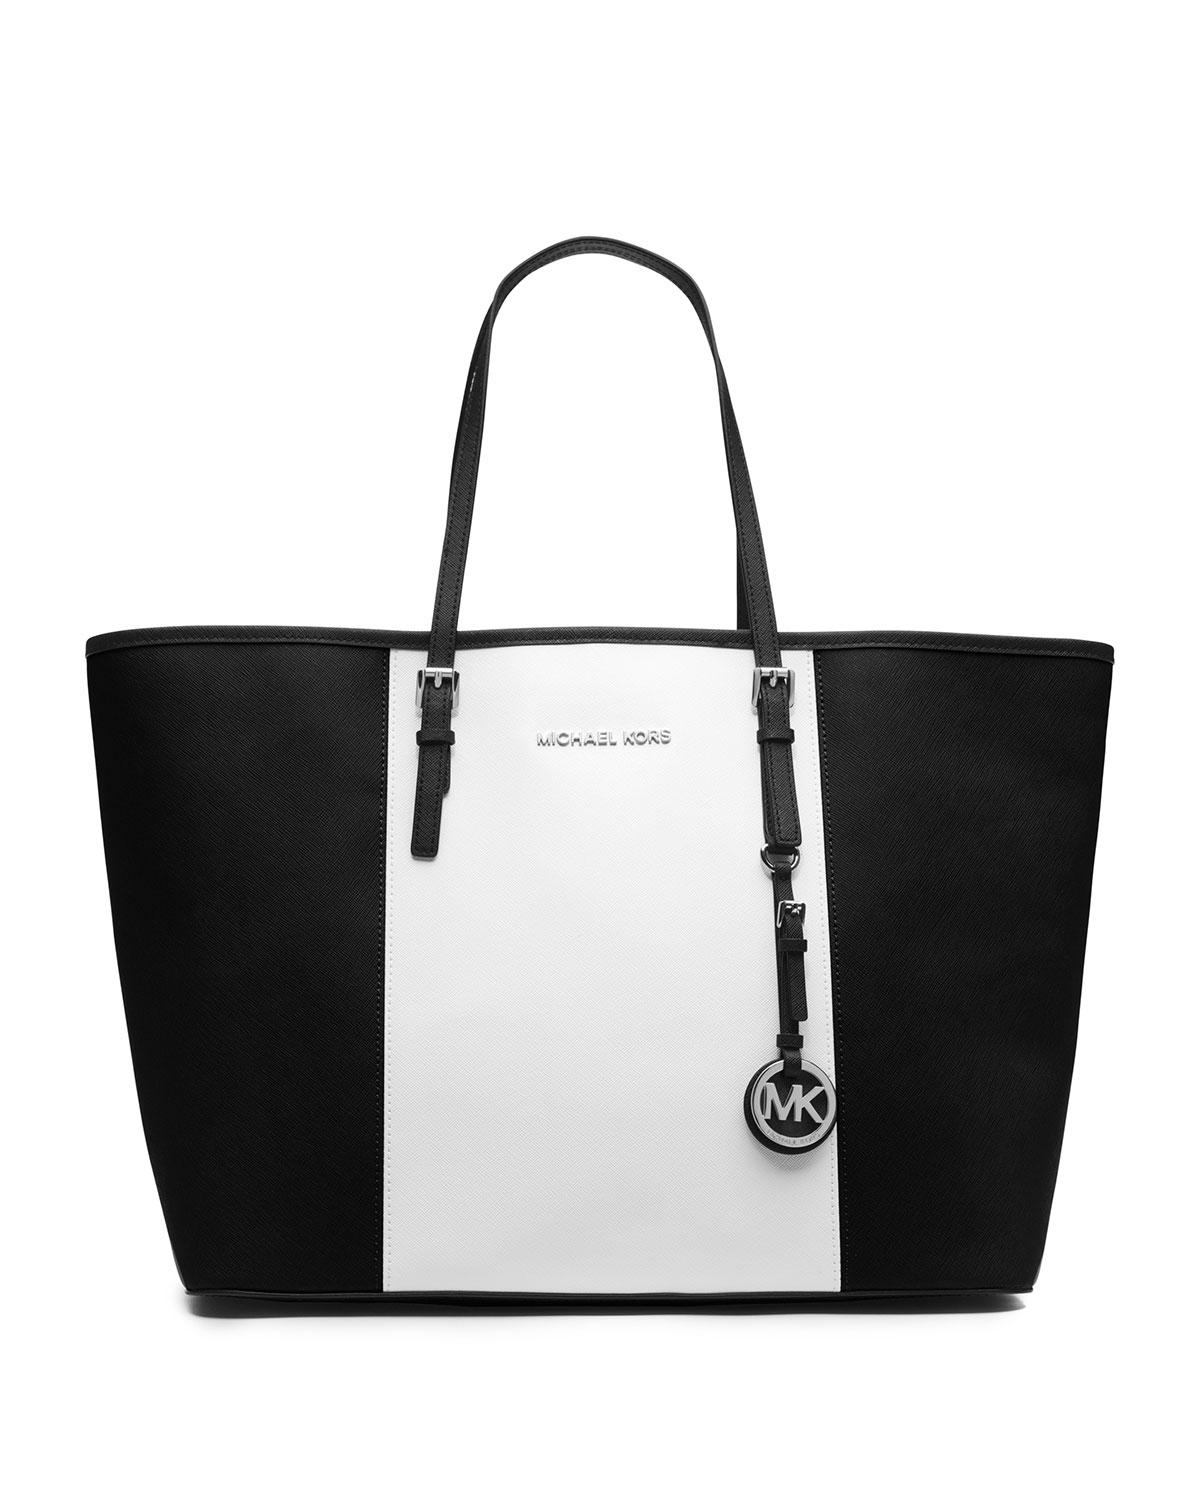 michael kors black and white bag